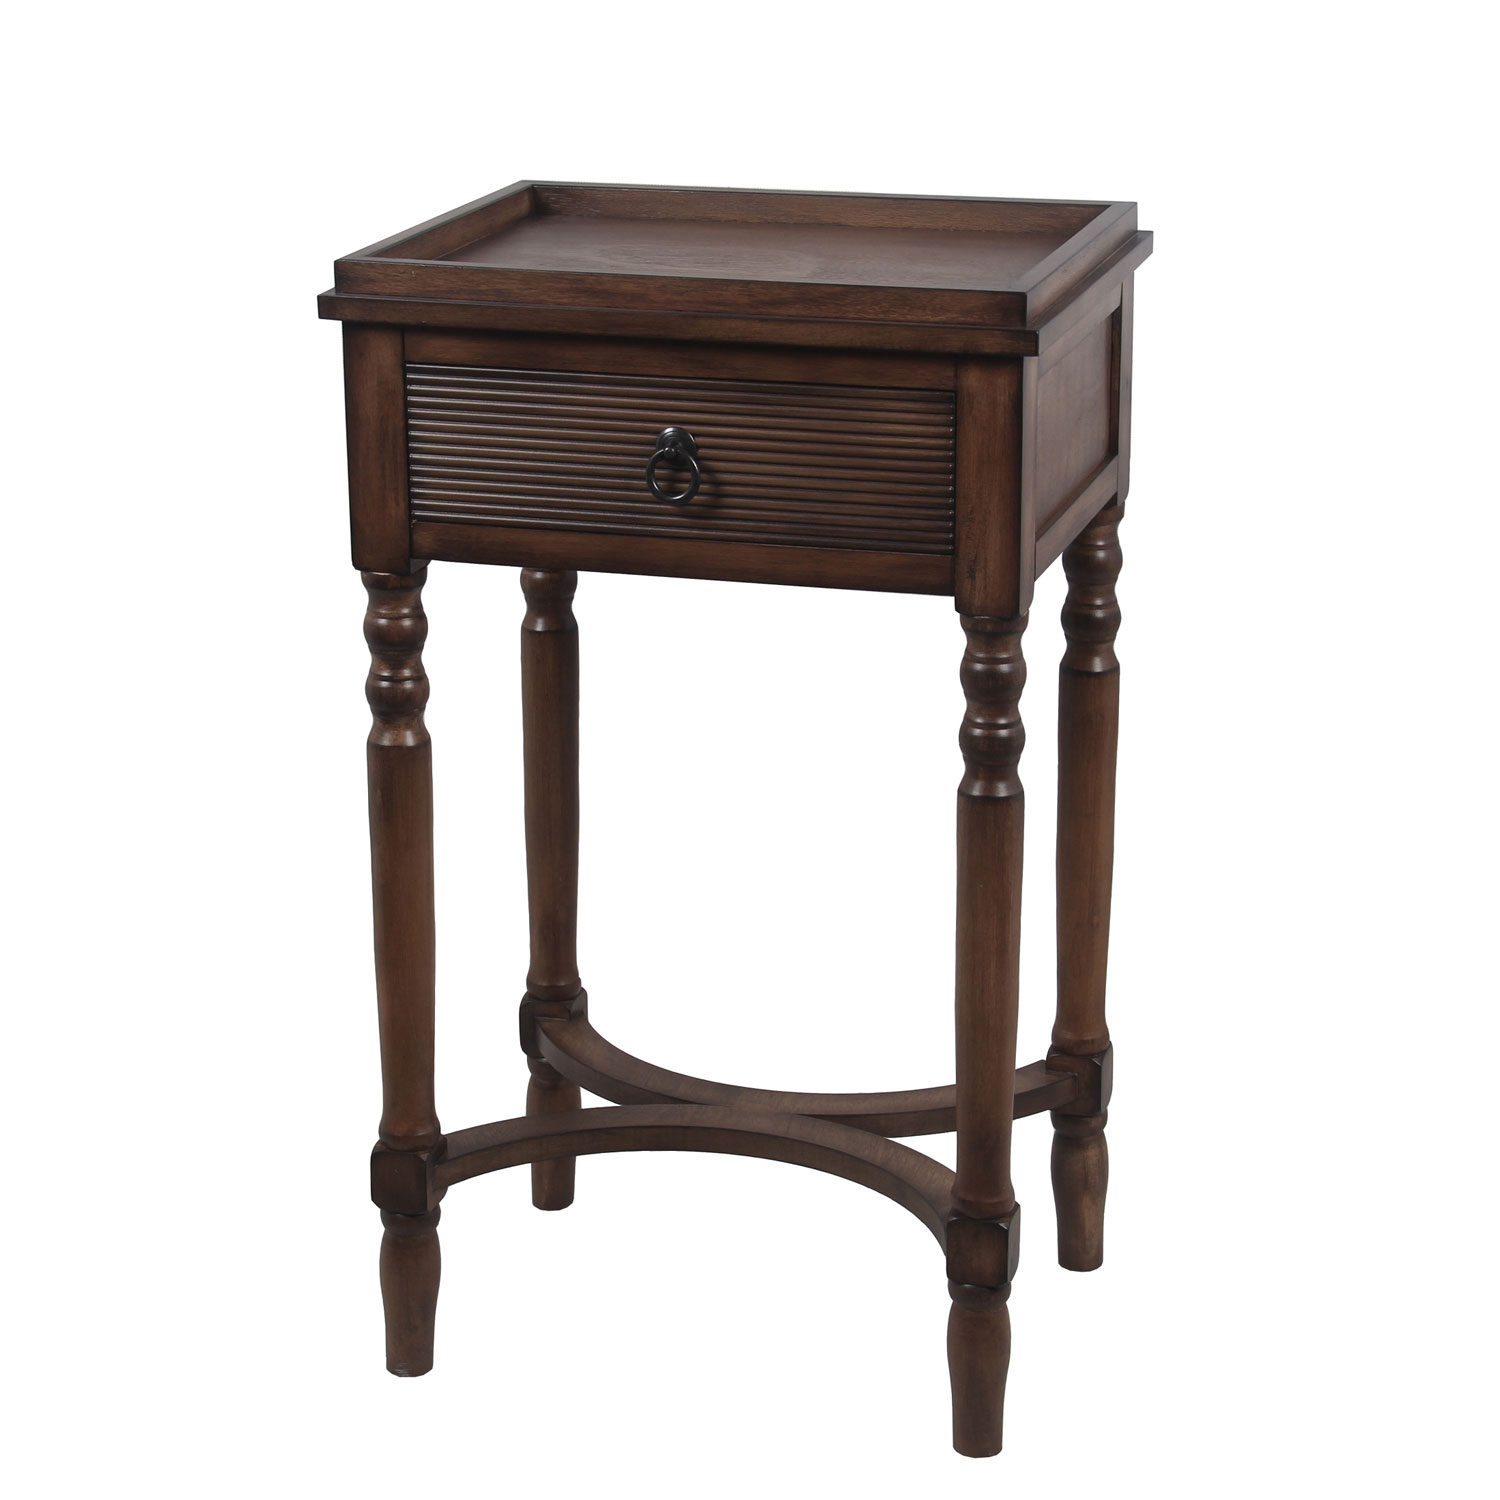 privilege british brown one drawer accent table bellacor hover zoom porcelain lamp round metal garden entryway bench inch tablecloth small red bedroom design contemporary marble